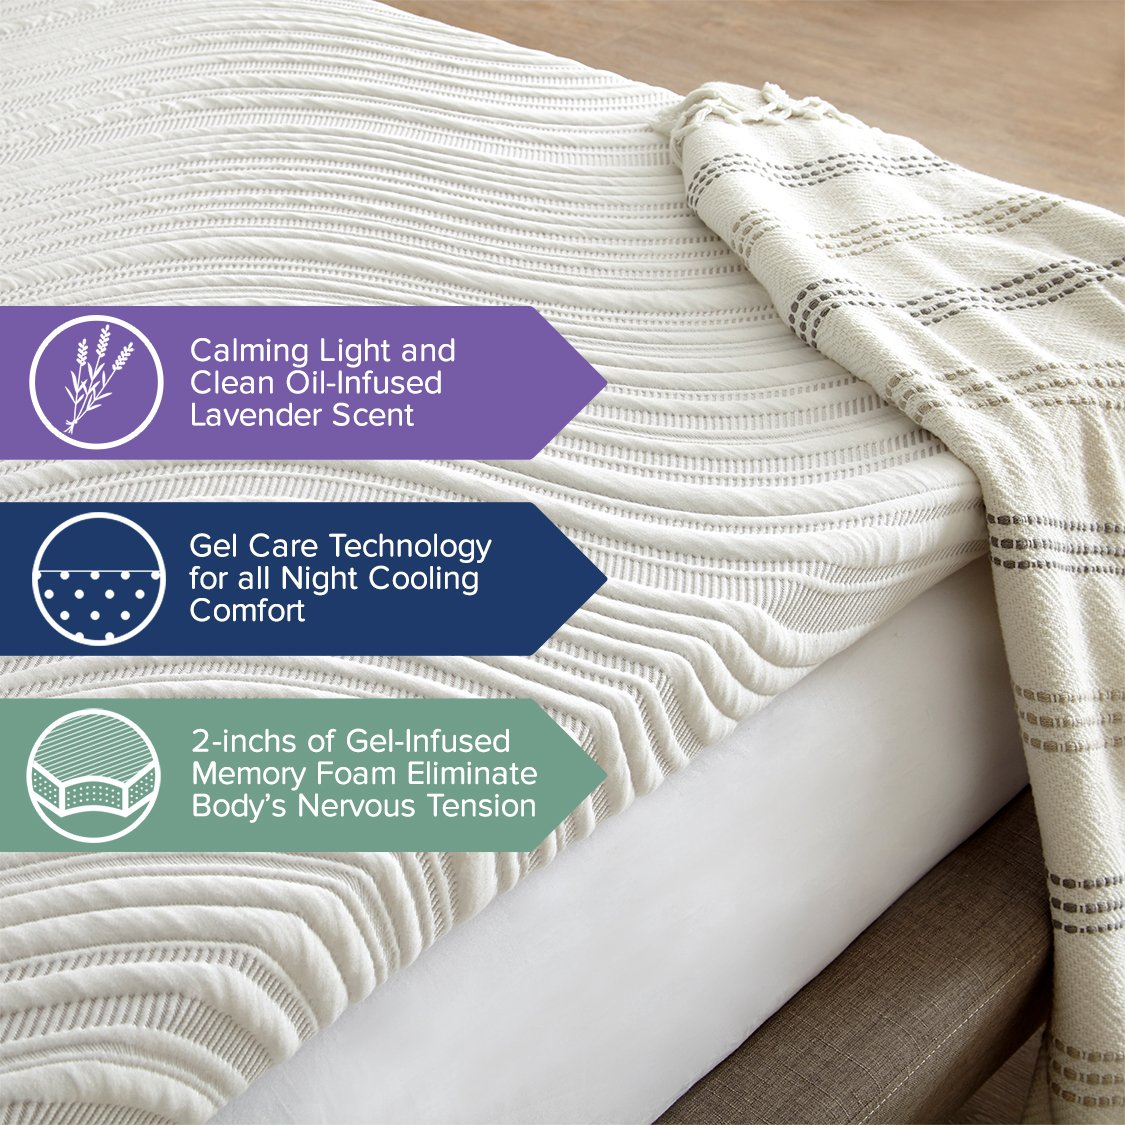 Enjoy The Relaxing Scent of Lavender as You Sleep Combined with The Comfort of Memory Foam PC-TOPLAV2-F Perfect Cloud Lavender Bliss Memory Foam Mattress Topper 2-inch Full